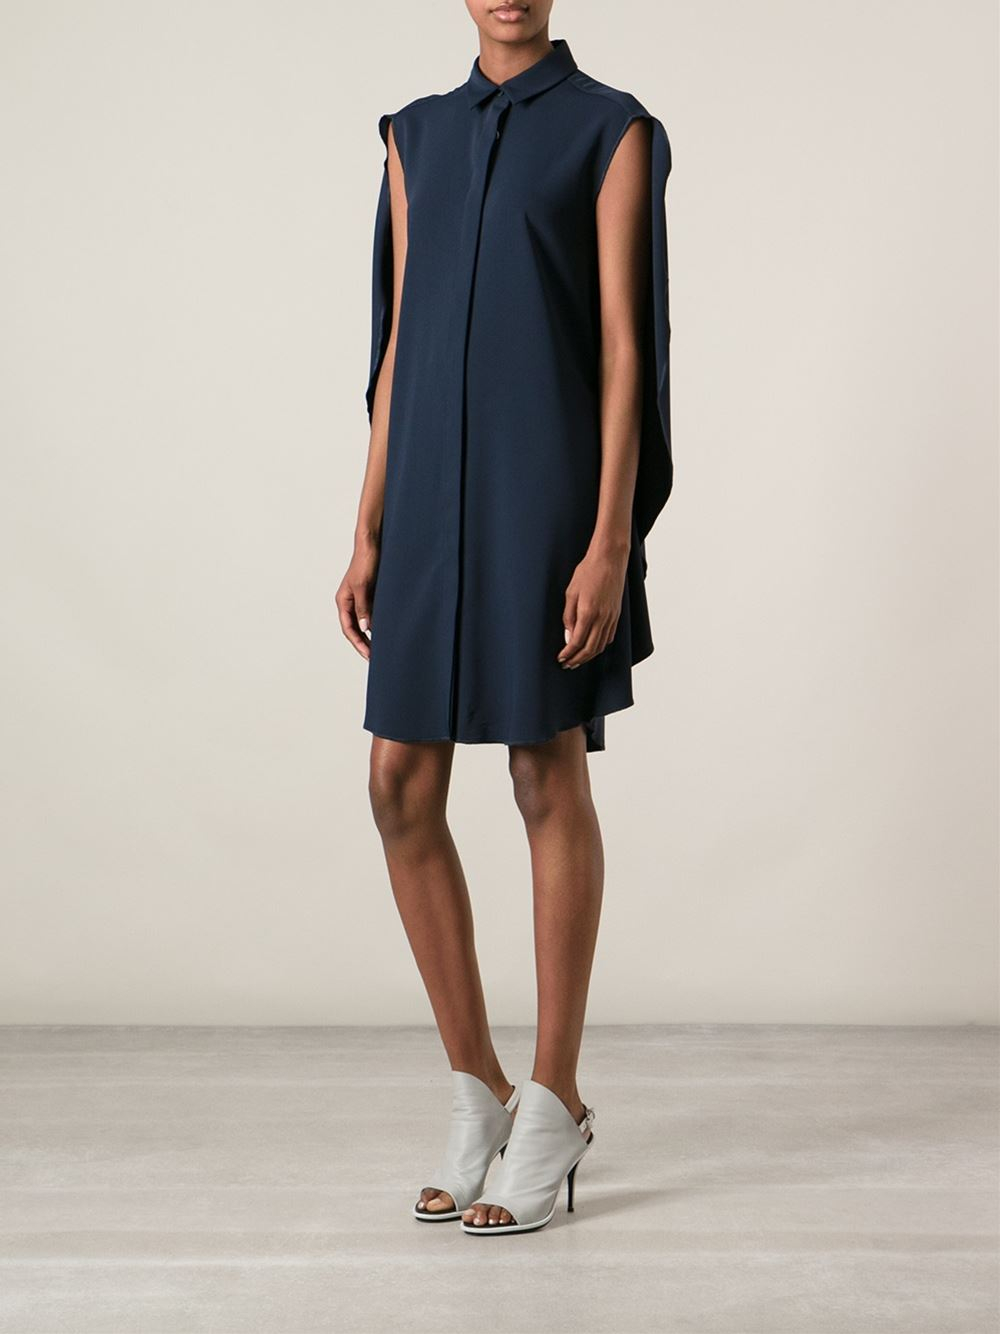 Lyst mm6 by maison martin margiela cape back dress in blue for Fashion maison